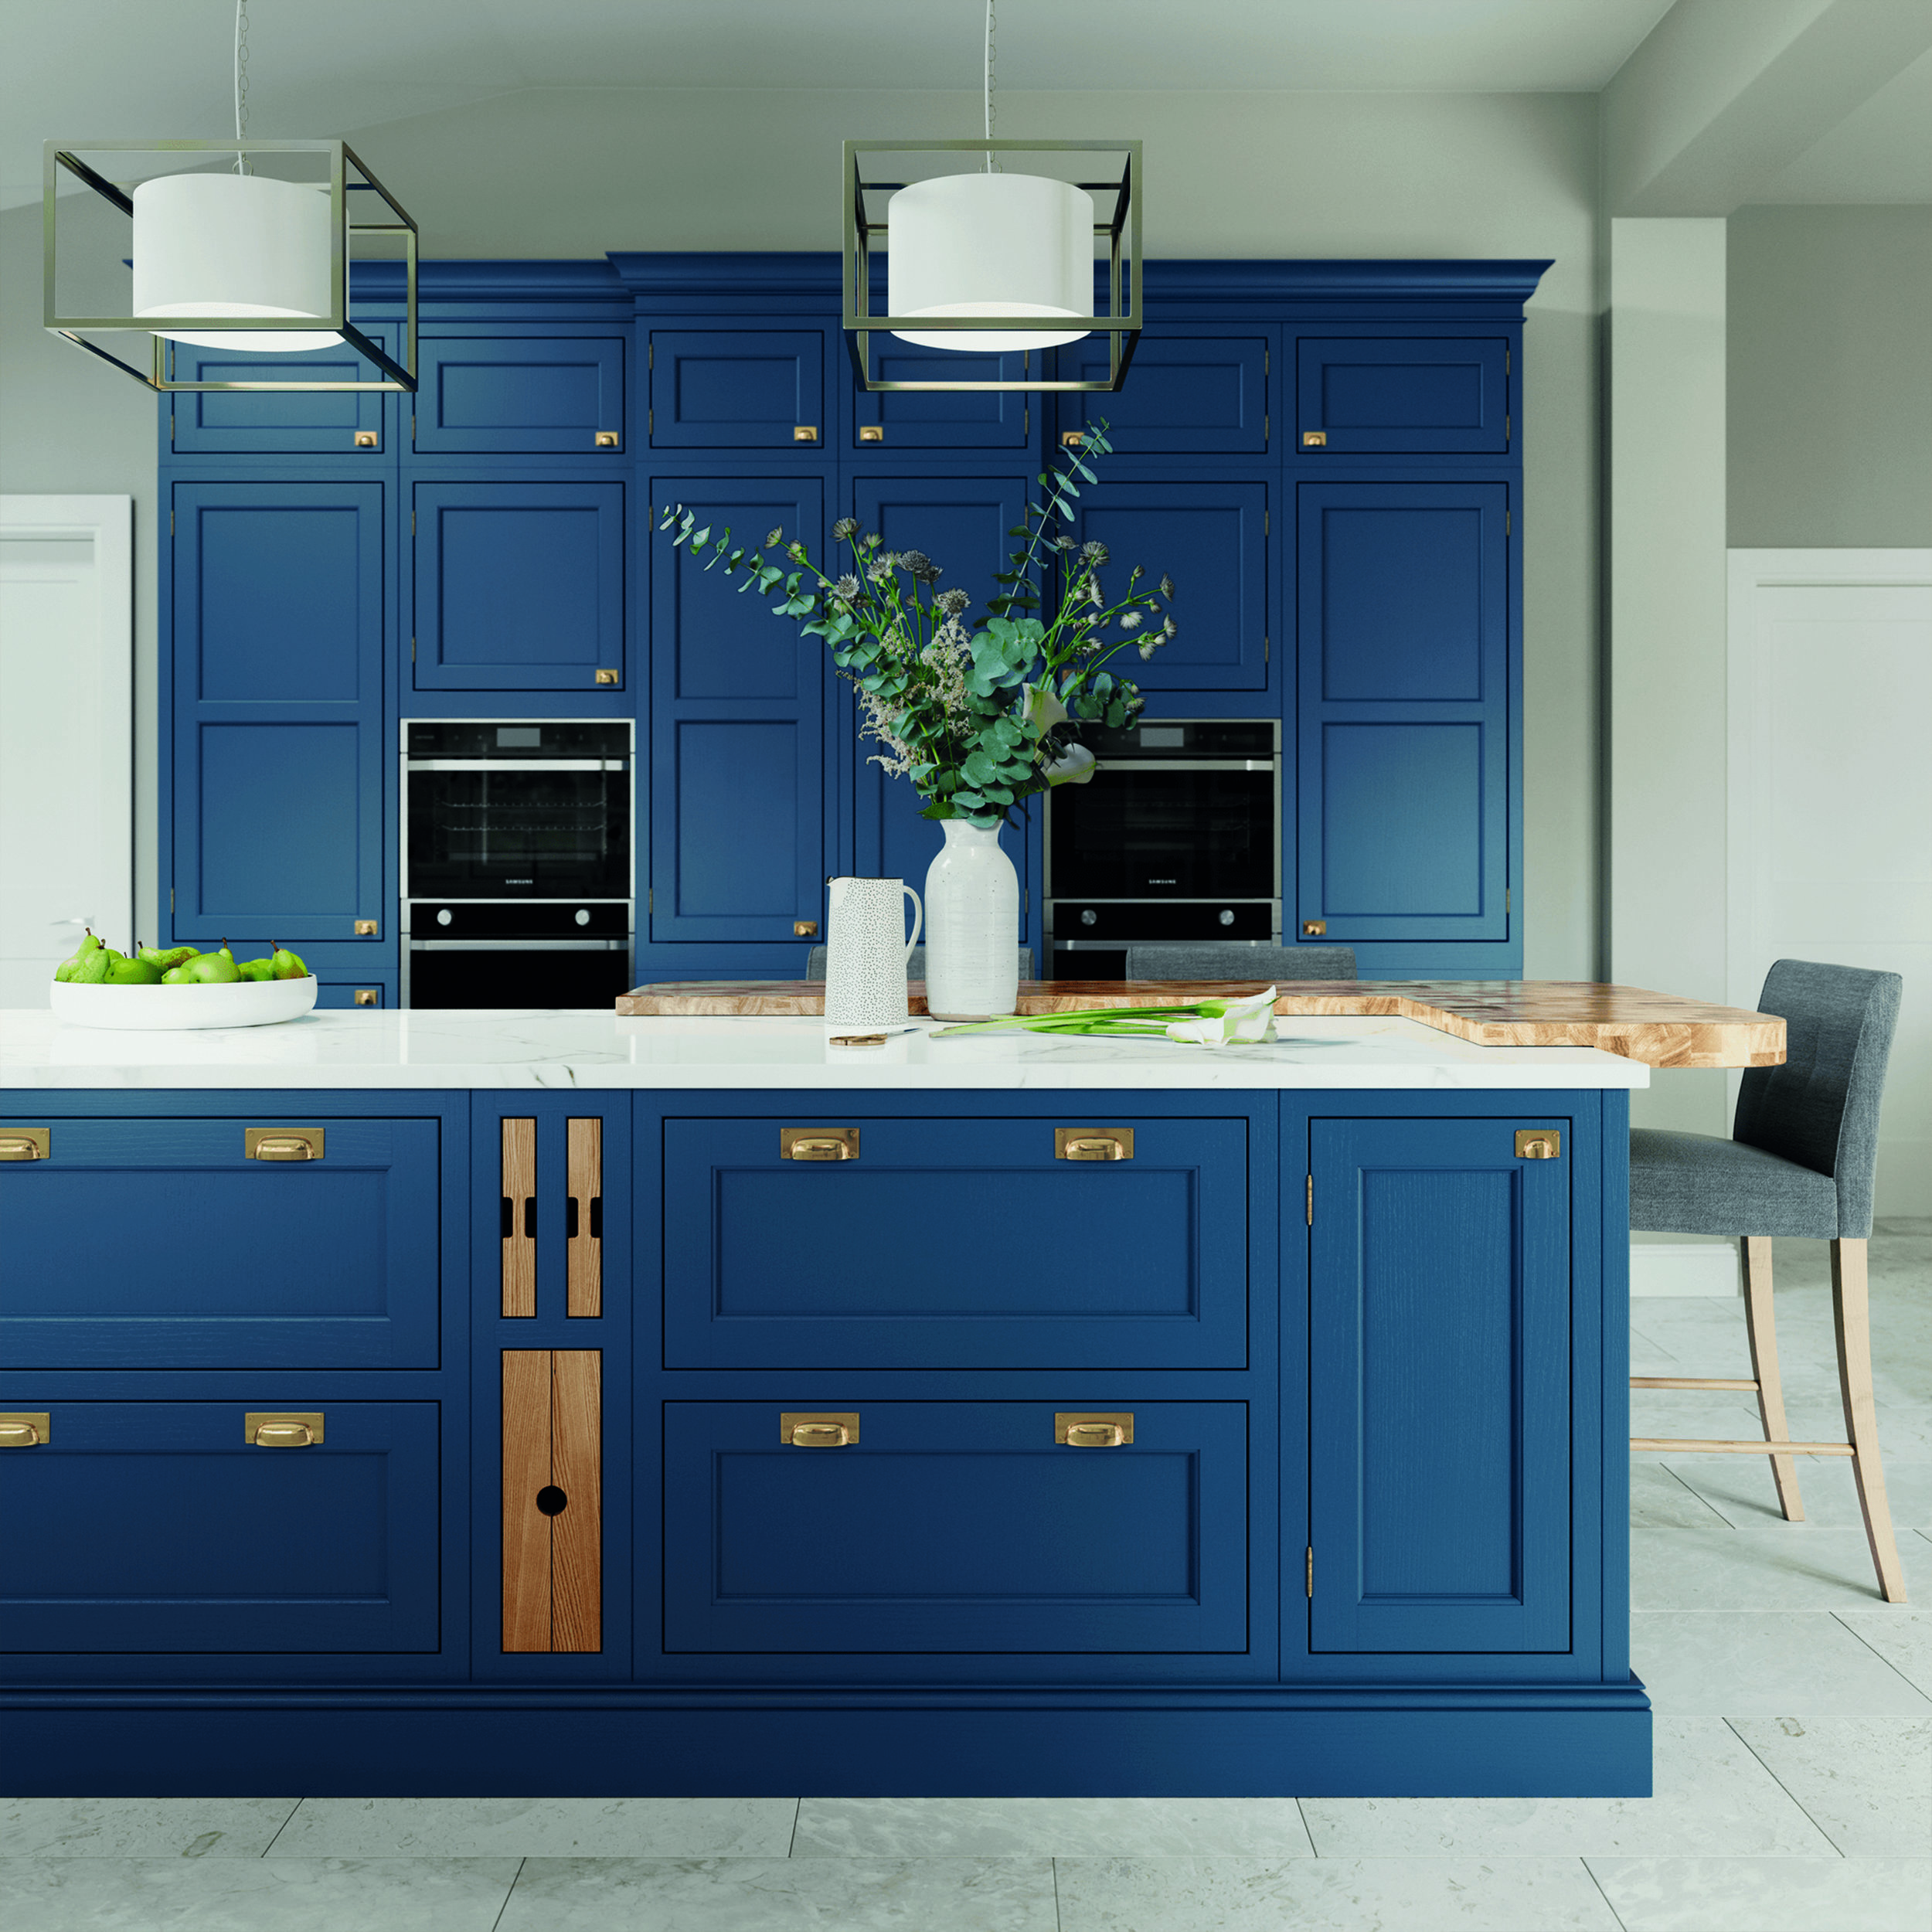 Kitchen blue.jpg